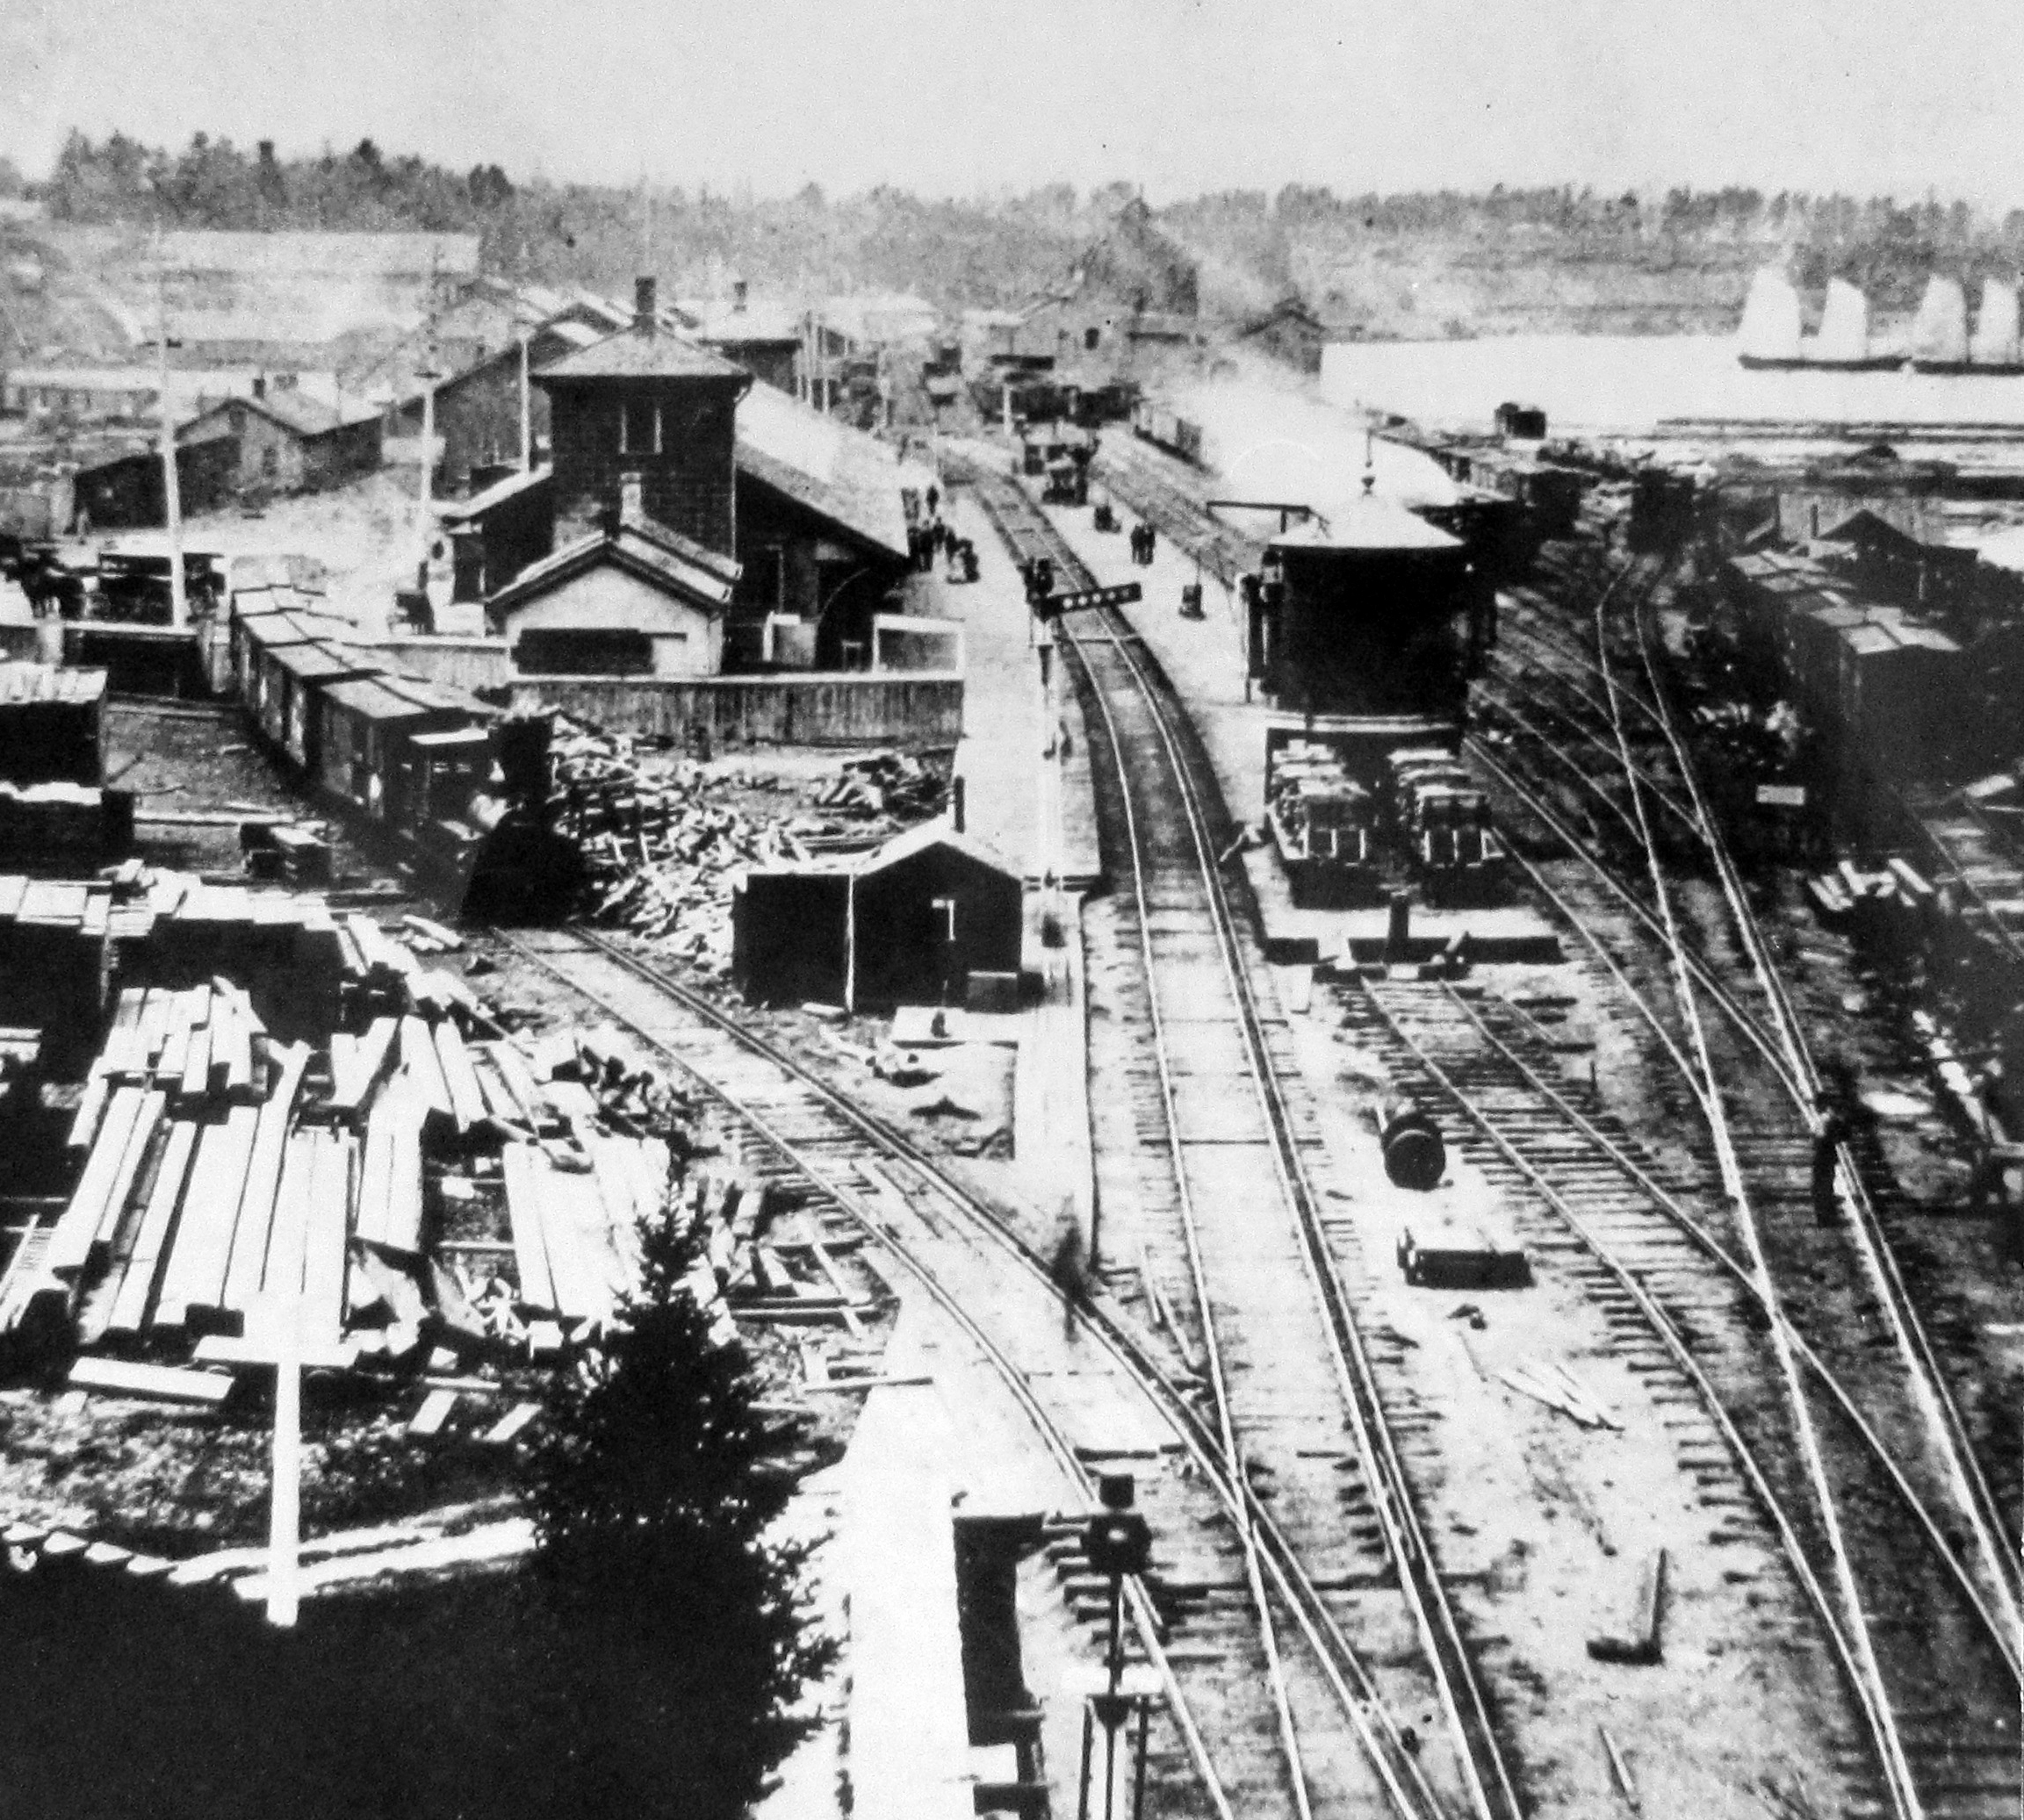 The Great Western Railway Yards and Station in which train cars lined up to one side of the station are visible. There are also piles of lumber and other materials lining the tracks. Two workers are visible in the foreground.